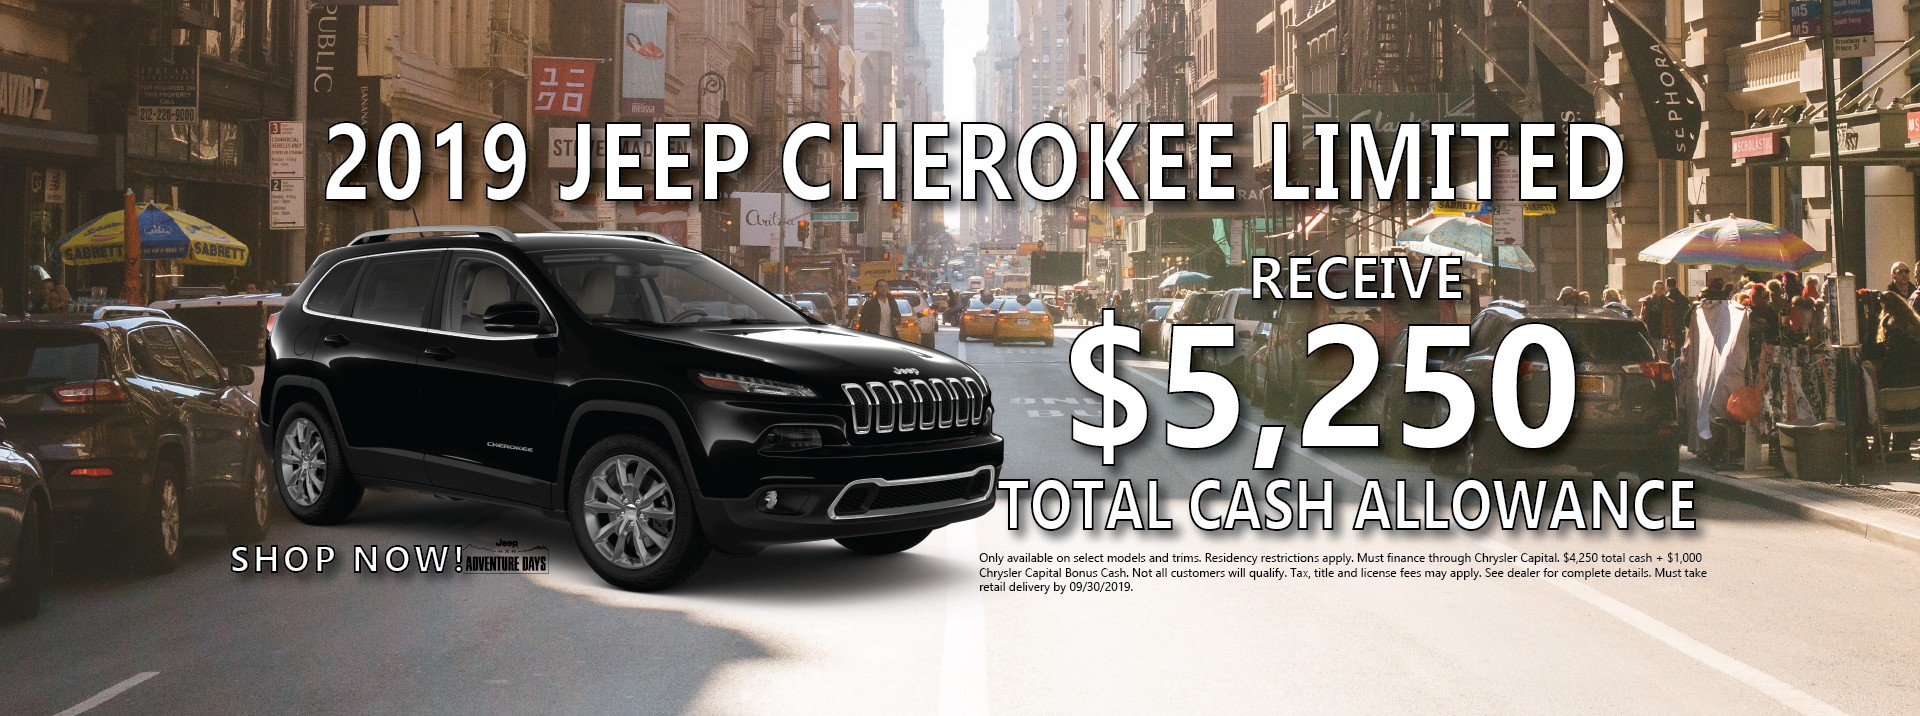 2019 Jeep Cherokee Finance Offer